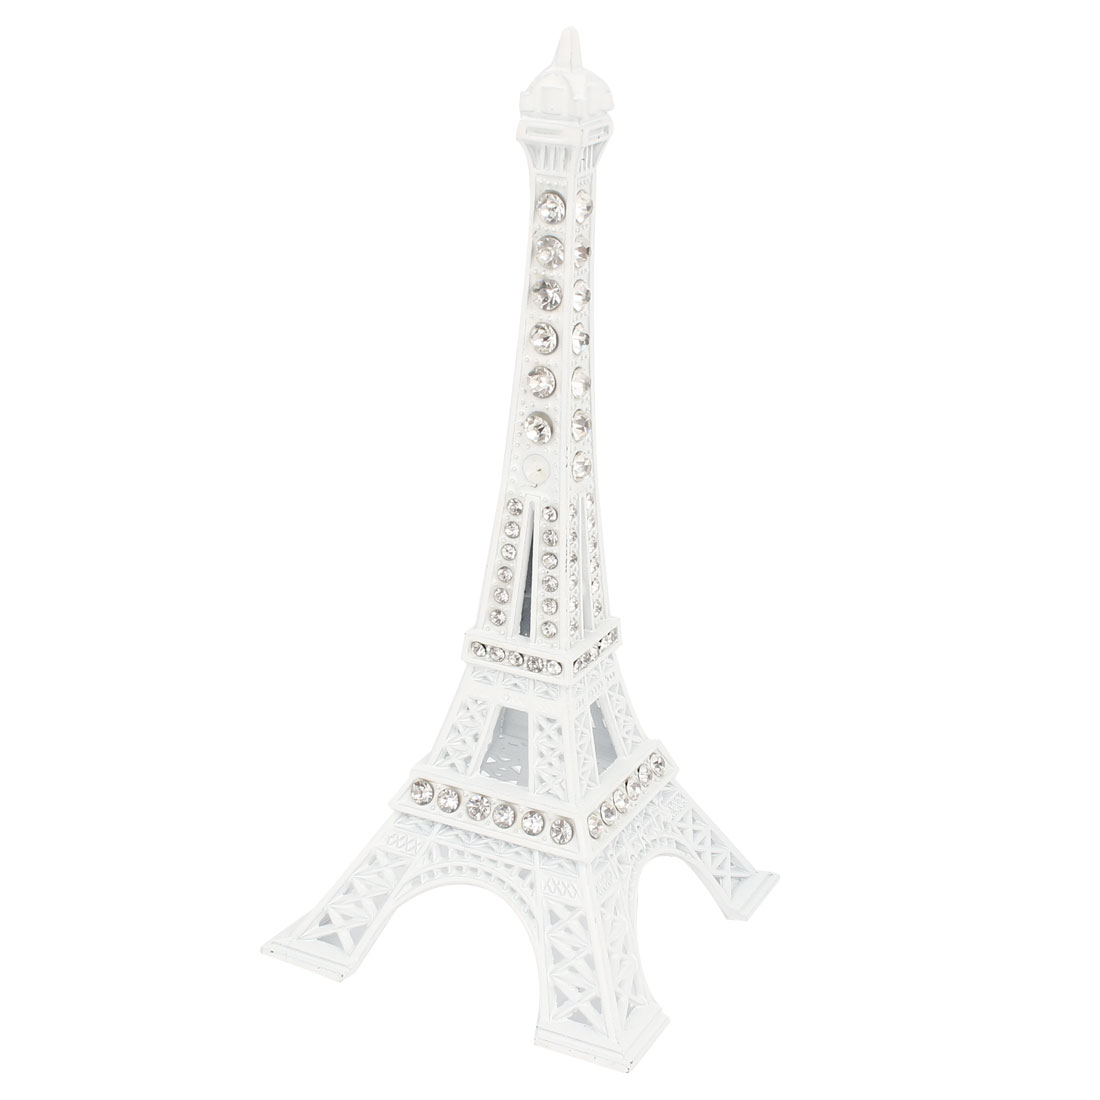 Plastic Mini Paris Eiffel Tower Figurine Statue Model Desk Decor 13cm White